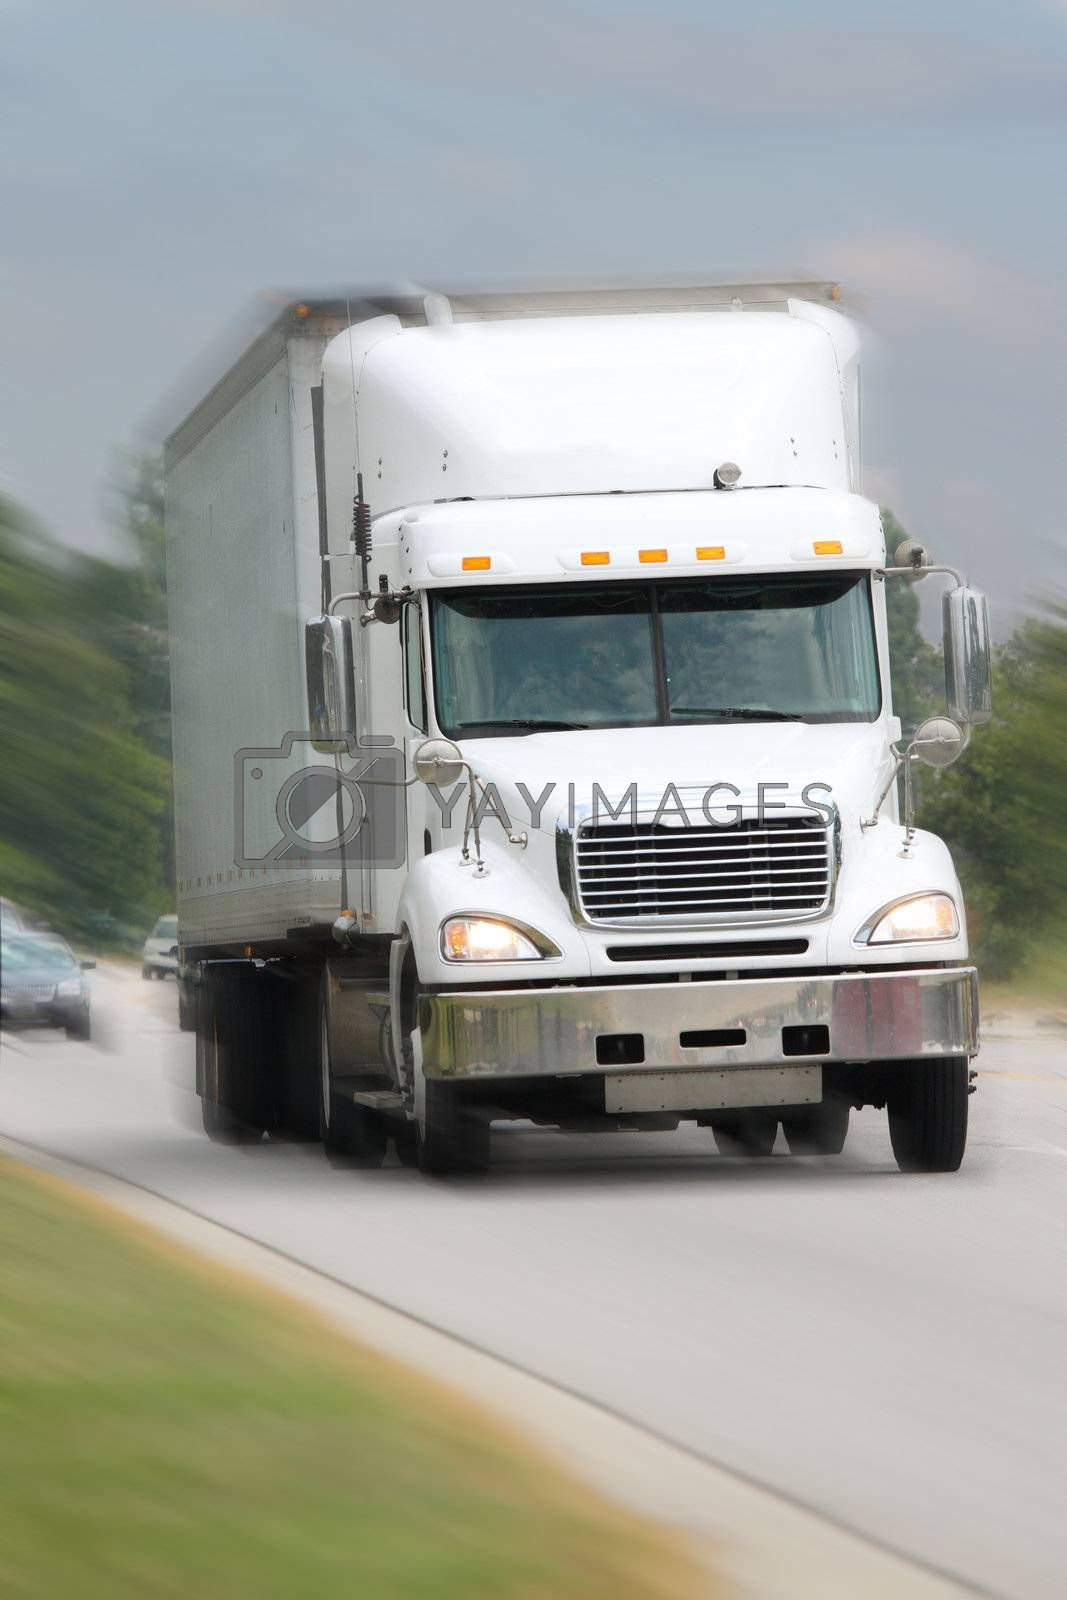 Royalty free image of truck on the move by gjdisplay